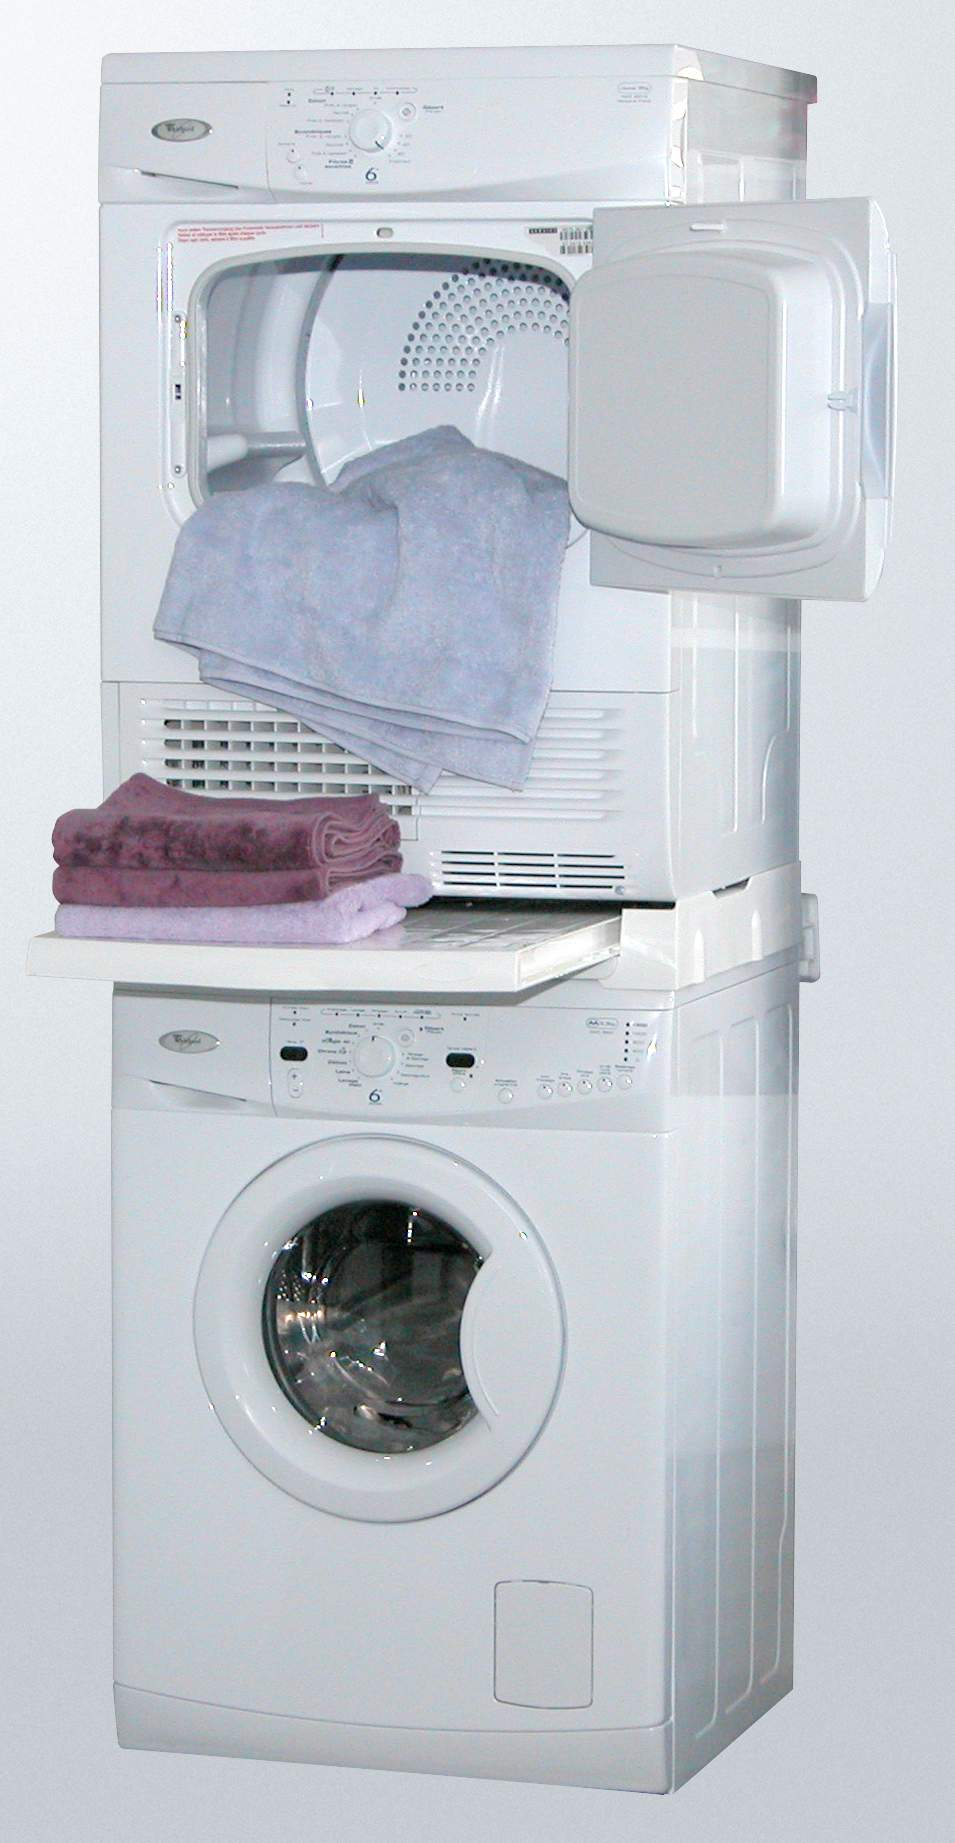 kit de superposition machine a laver et seche linge KIT DE SUPERPOSITION M.A.L.- S.L. 60x60 UNIVERSEL + SANGLE SKS101. KIT DE SUPERPOSITION  LAVE-LINGE ...